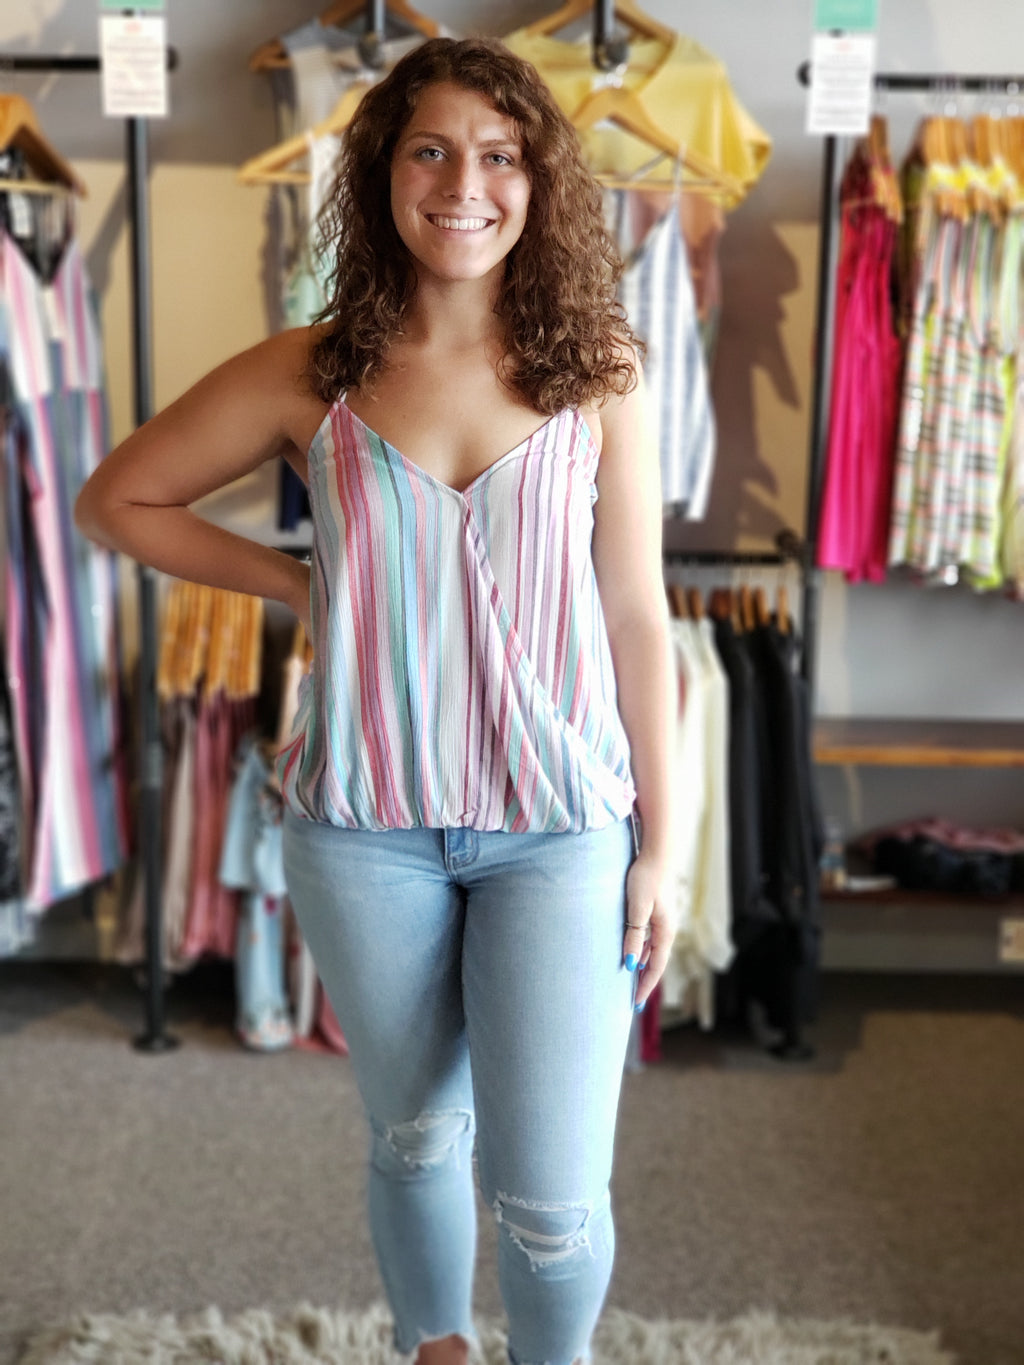 Lavender/Mint Striped Sleeveless Top with Plunging Neckline